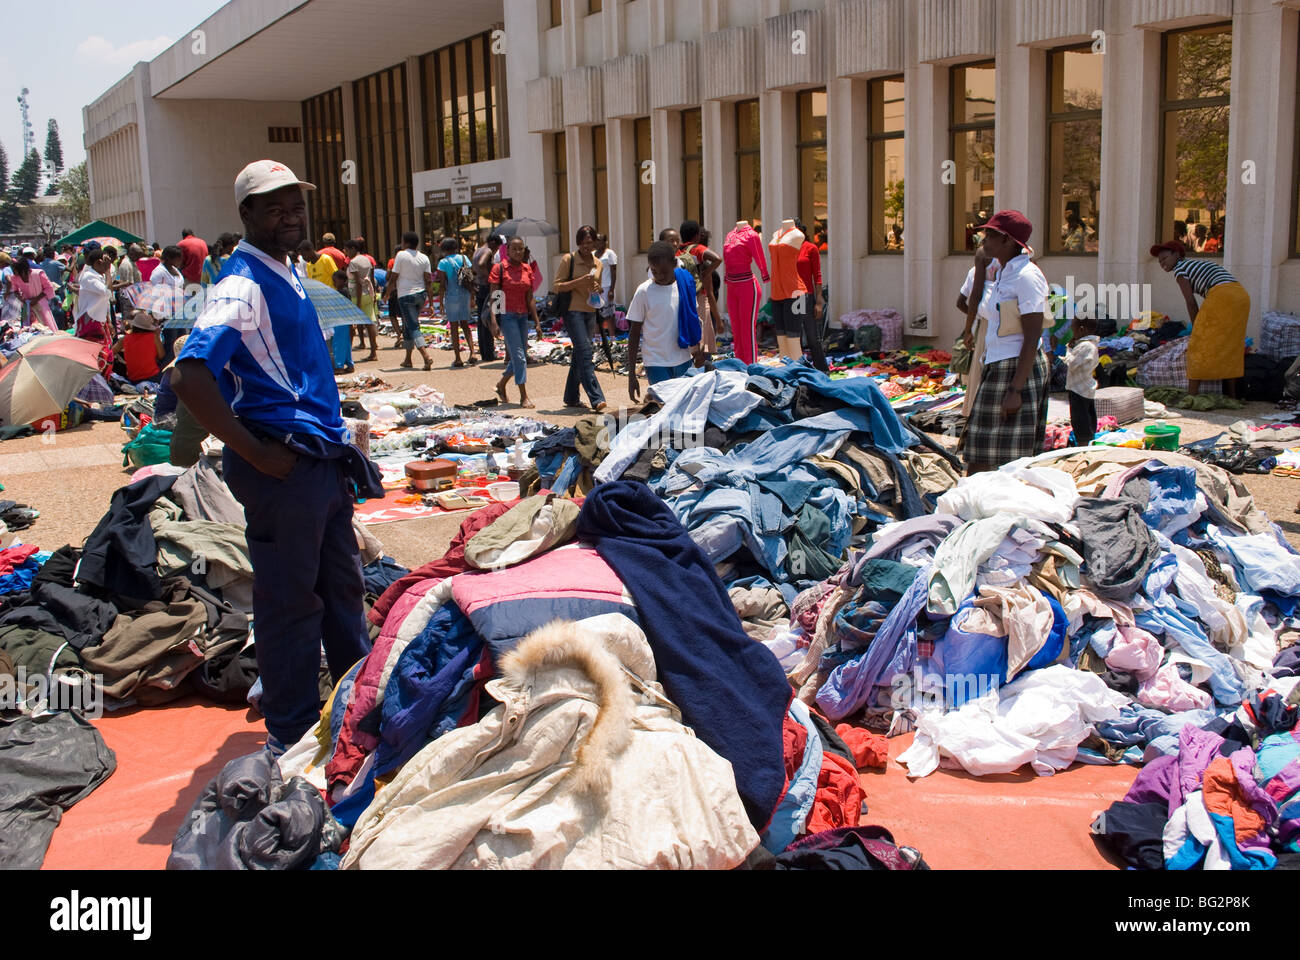 A vendor surveys mountains of second hand clothing for sale at the ...